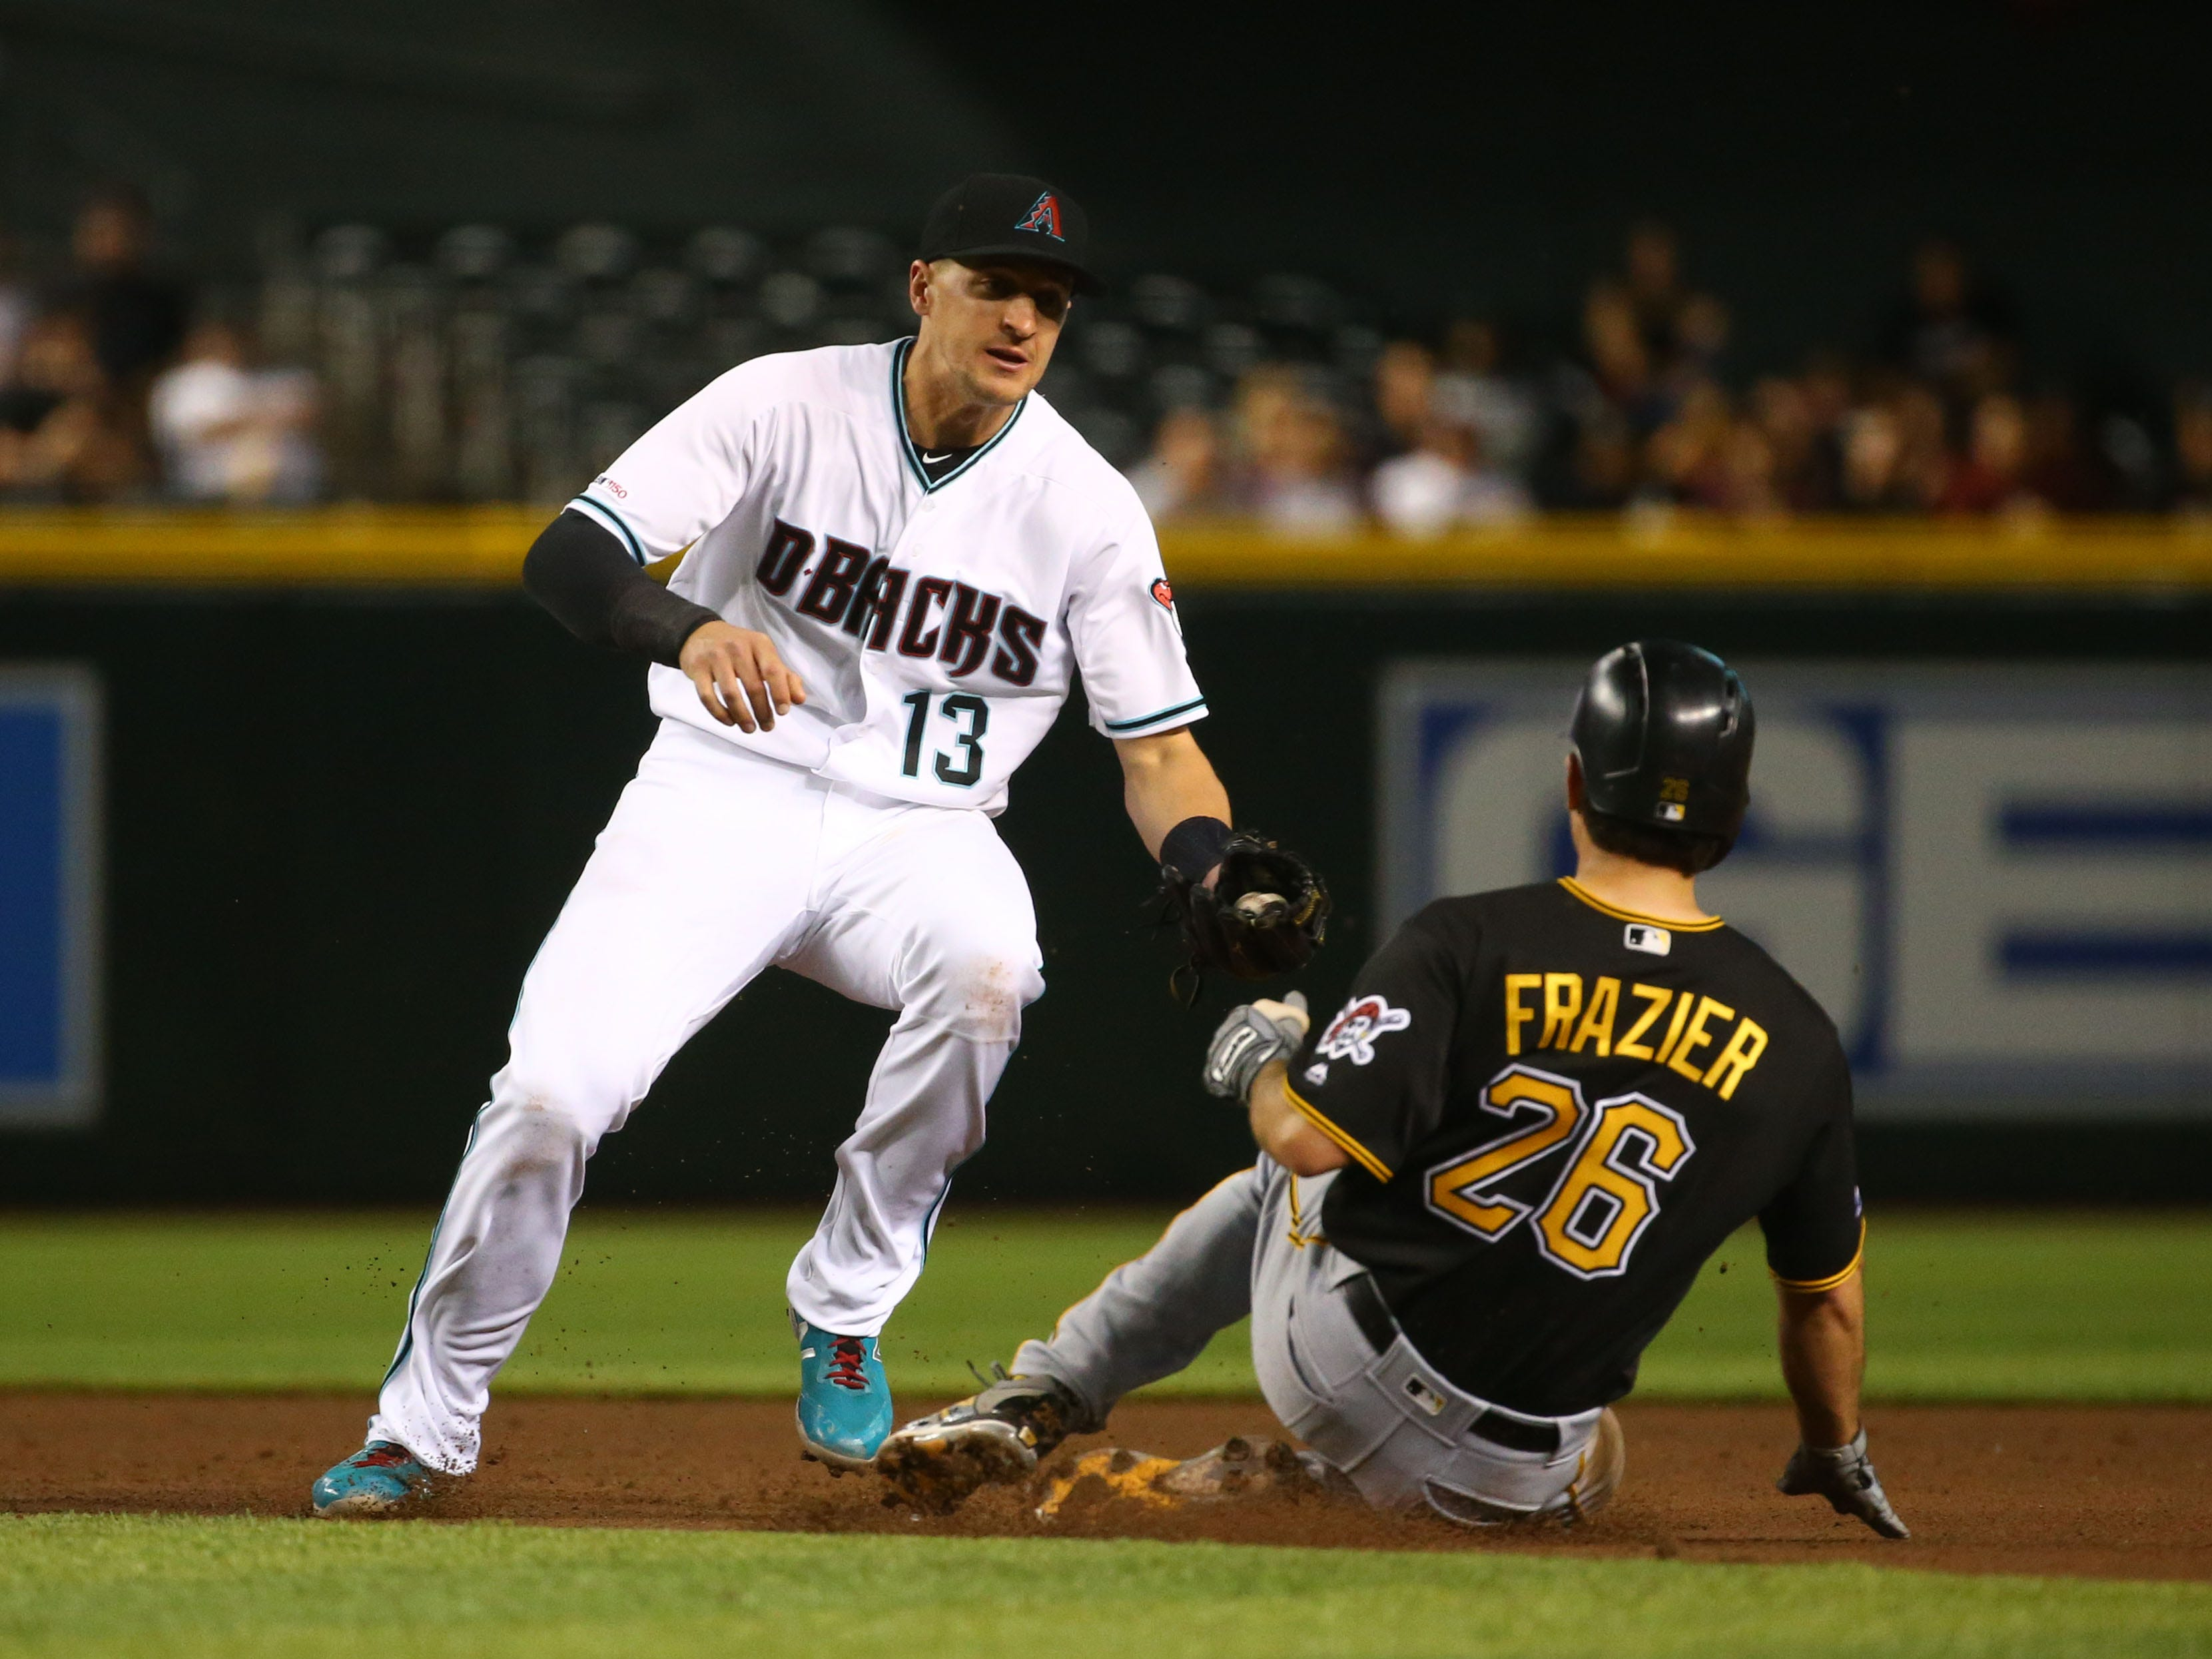 Arizona Diamondbacks Nick Ahmed tags-out Pittsburgh Pirates Adam Frazier in the fifth inning on May. 14, 2019 at Chase Field in Phoenix, Ariz.